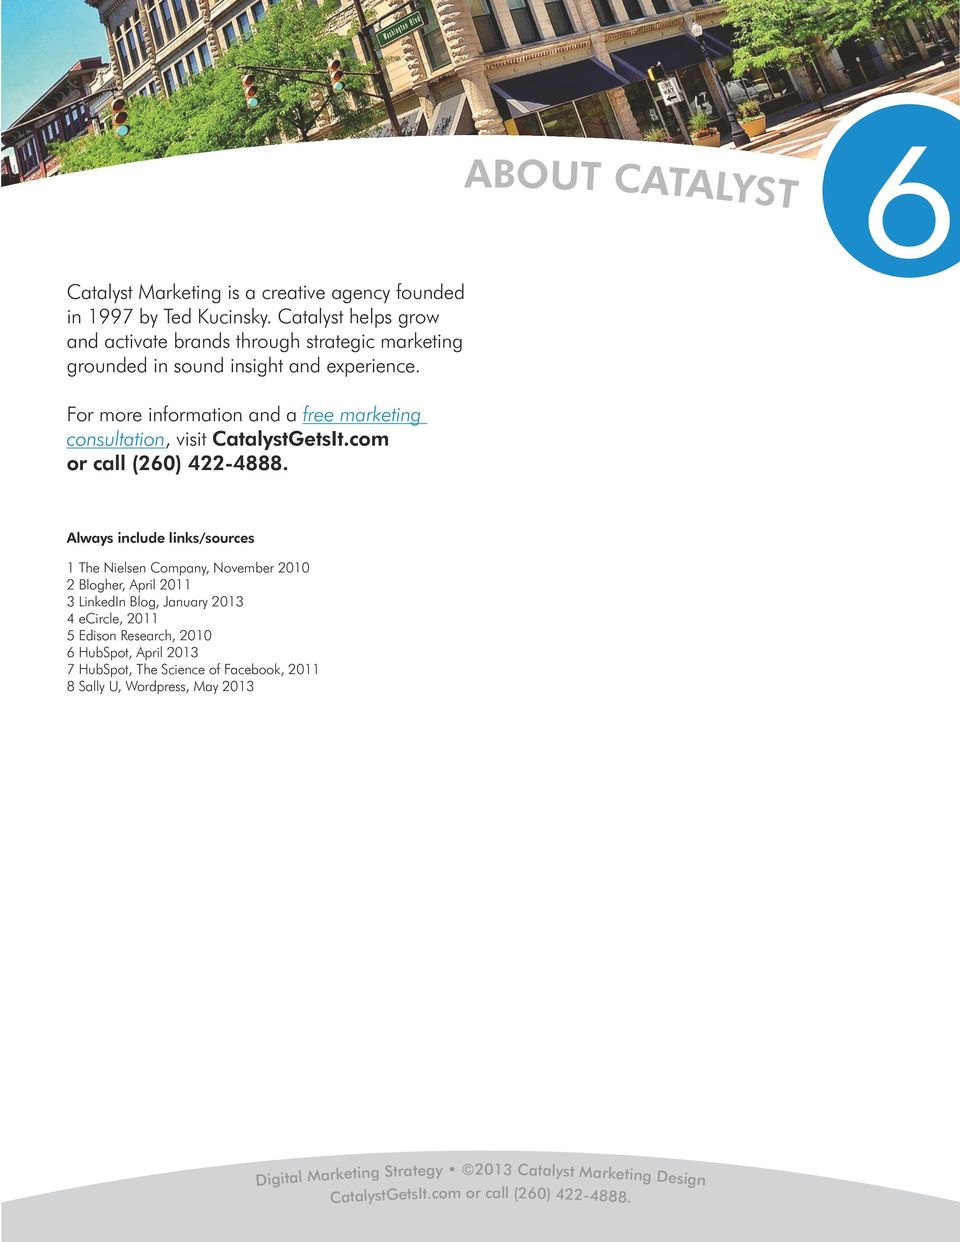 For more information and a free marketing consultation, visit CatalystGetsIt.com or call (260) 422-4888.